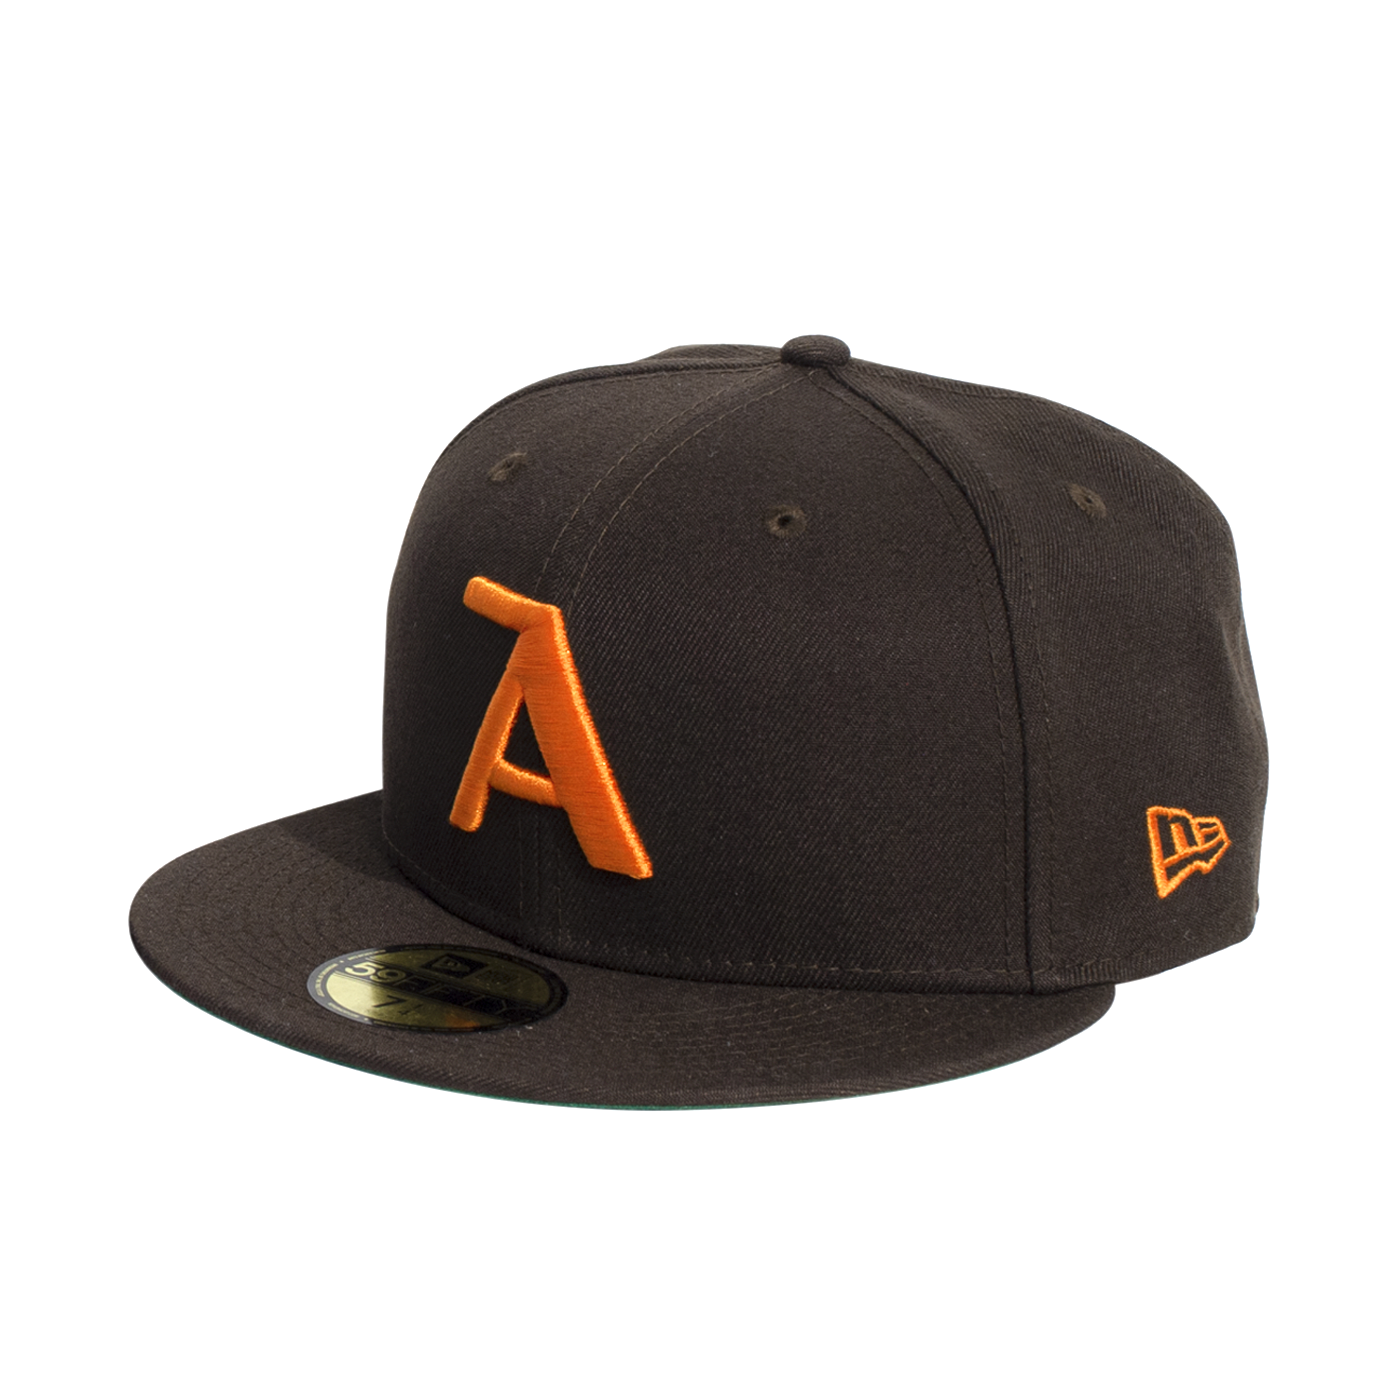 Ashland New Era Fitted Cap